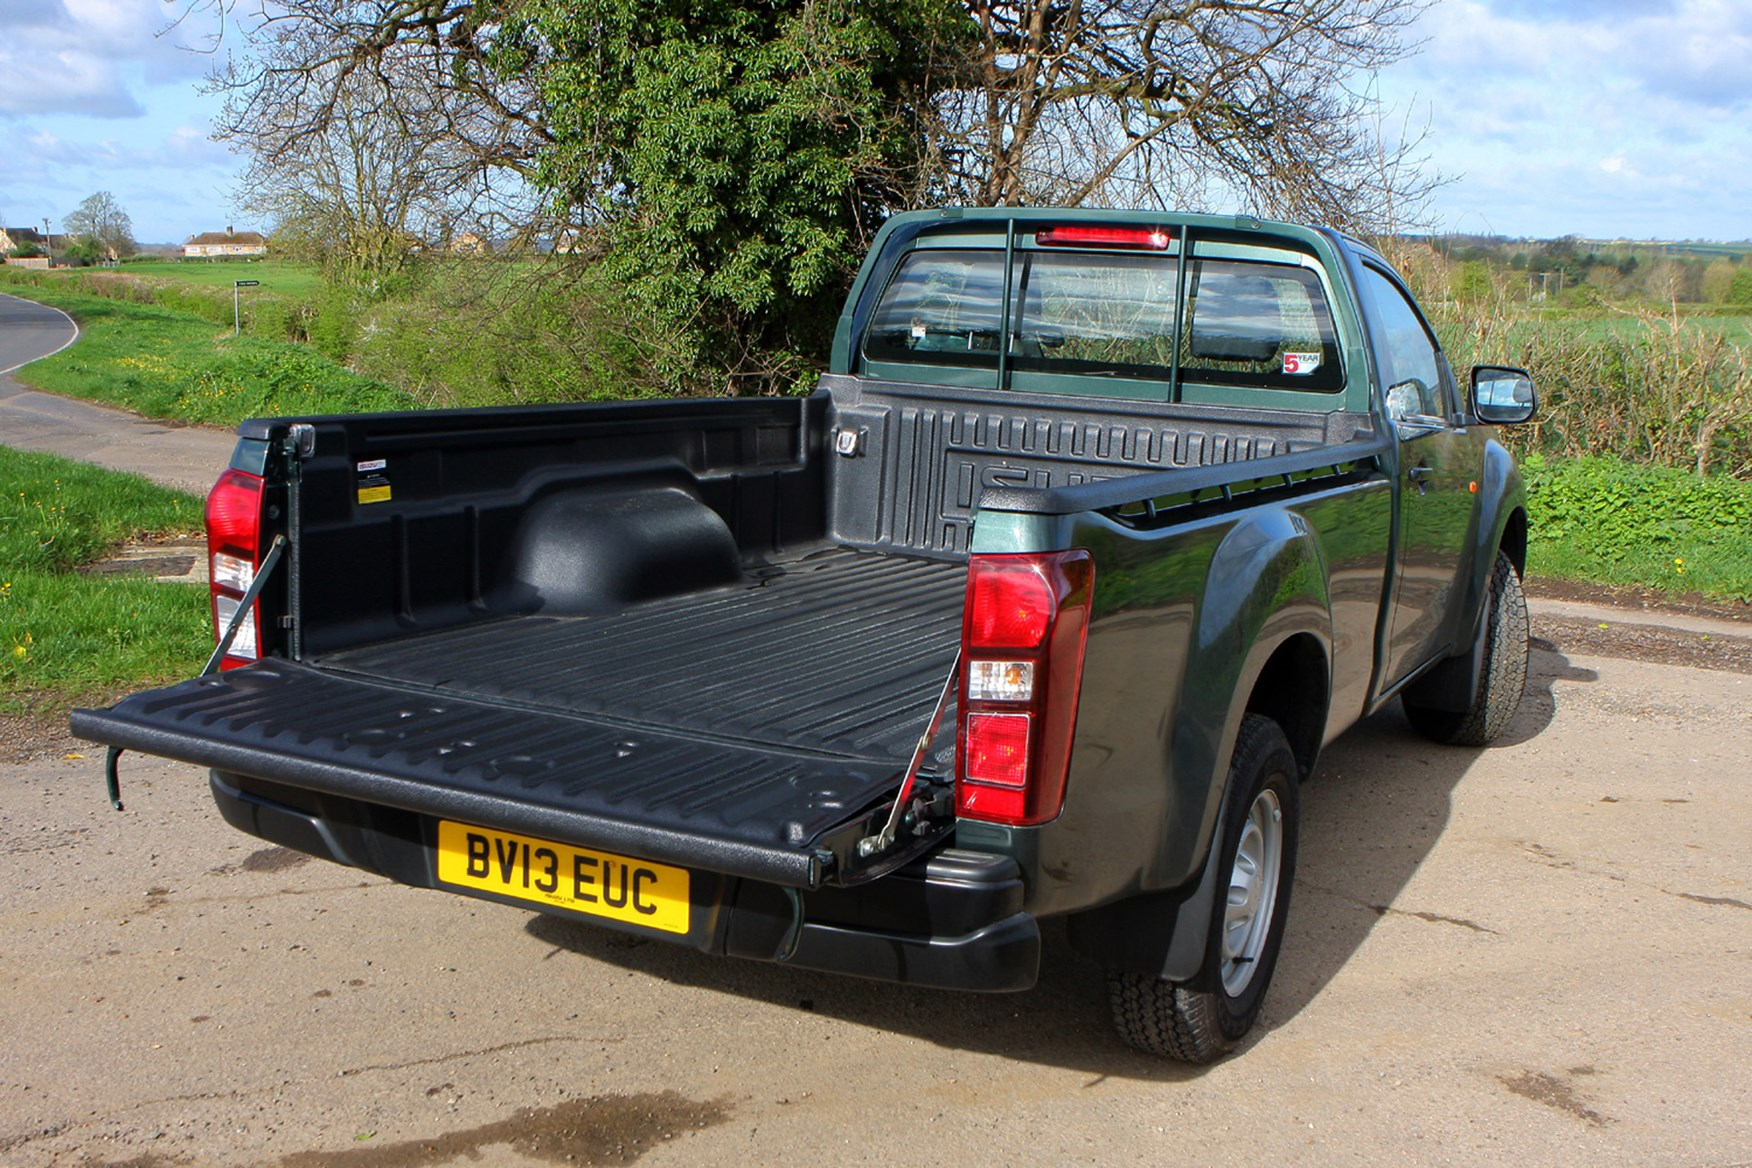 Isuzu D-Max full review on Parkers Vans - load area capacity